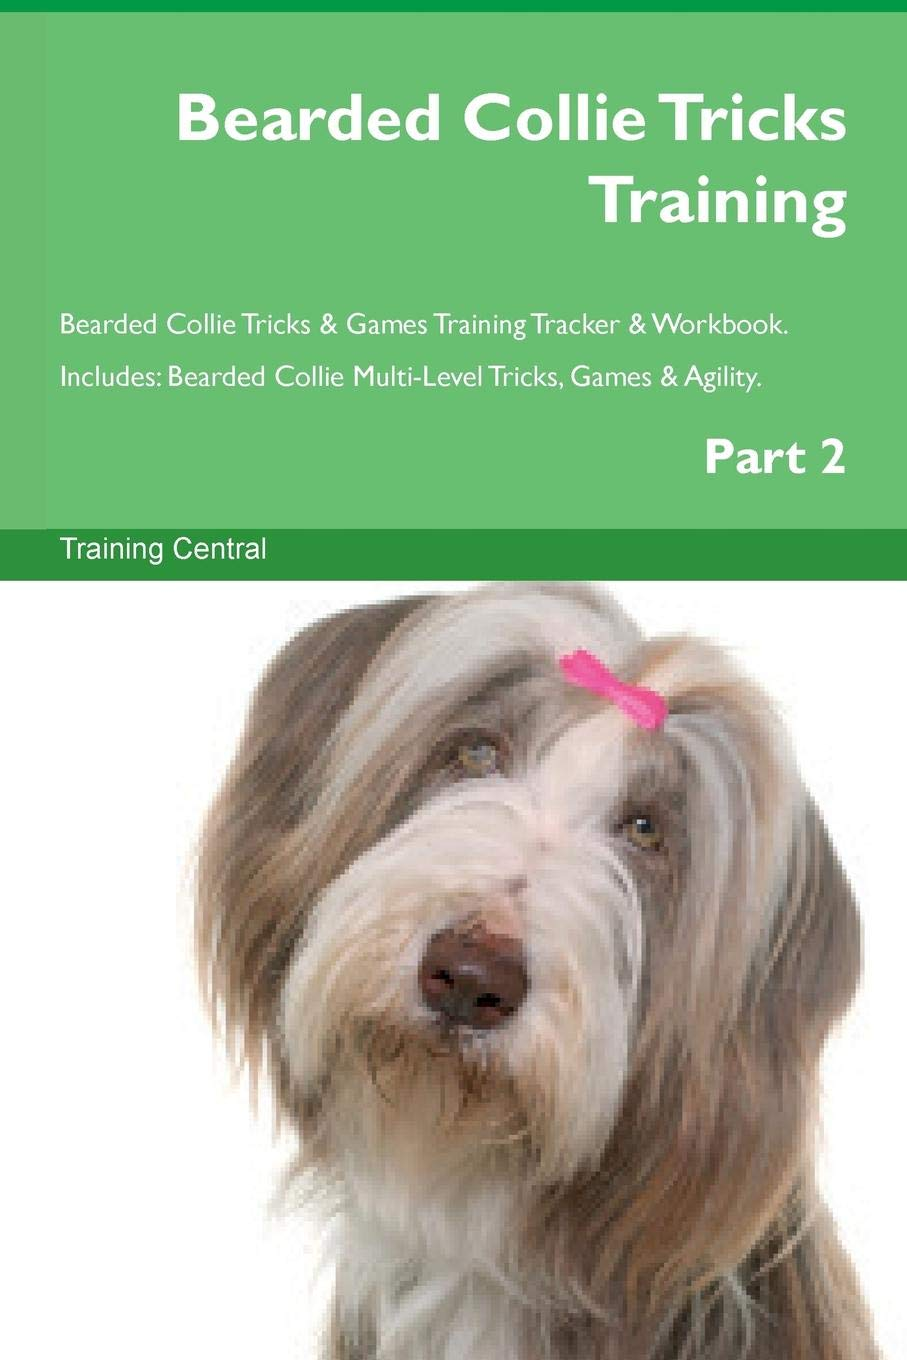 Bearded Collie Tricks Training Bearded Collie Tricks & Games Training Tracker & Workbook.  Includes: Bearded Collie Multi-Level Tricks, Games & Agility. Part 2